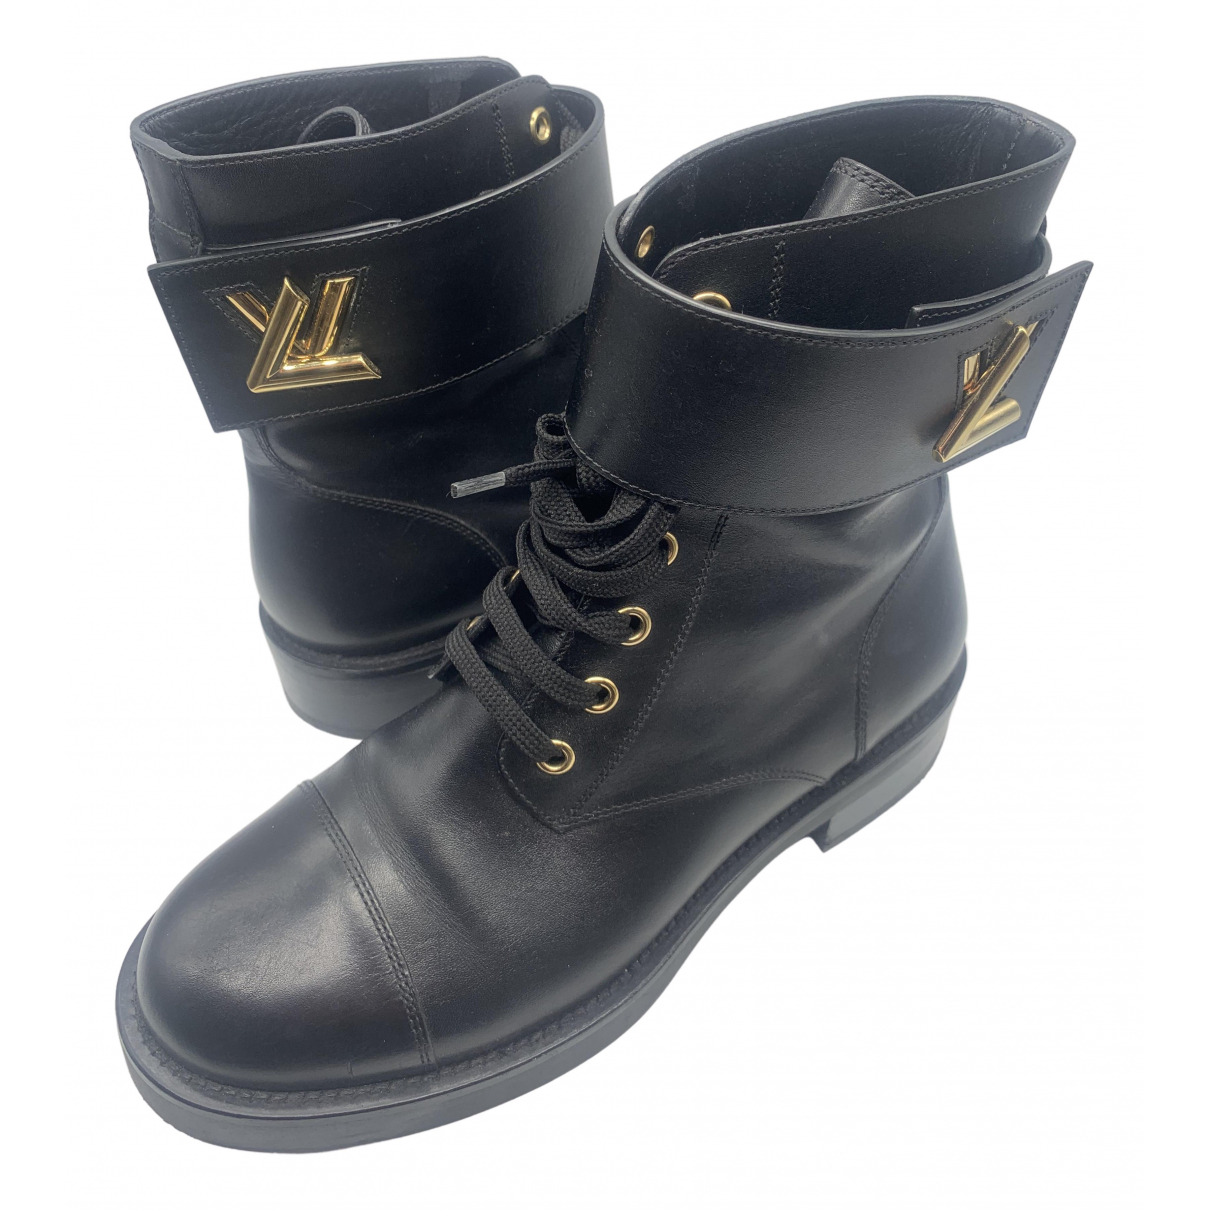 Louis Vuitton Wonderland Black Leather Ankle boots for Women 37 EU